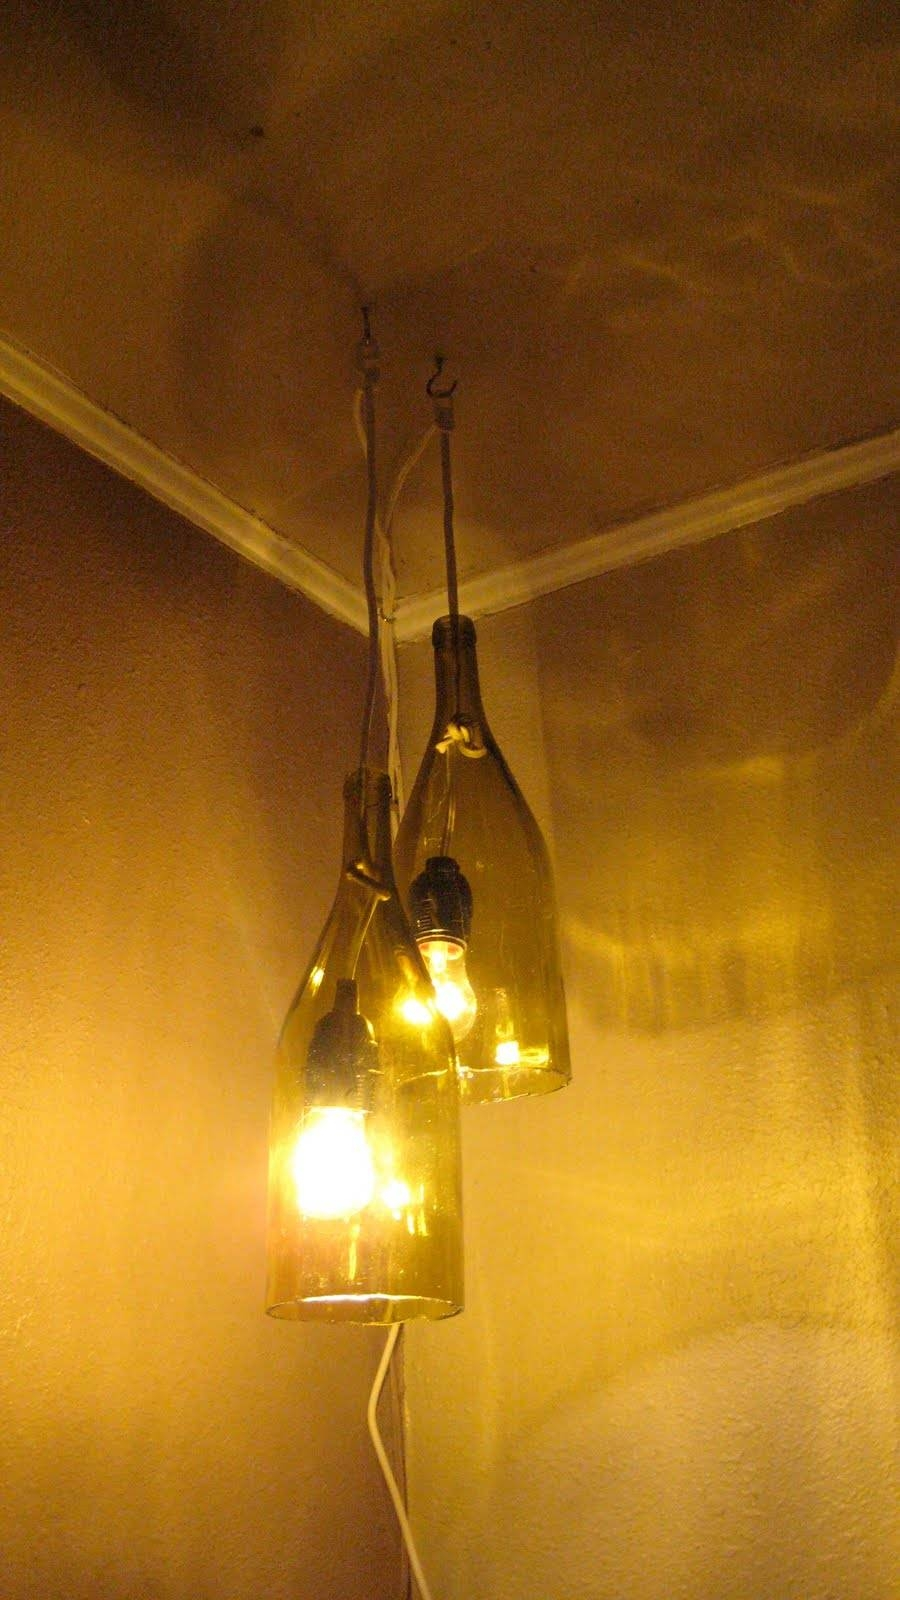 Remodelaholic | How To Make A Glass Wine Bottle Pendant Light Diy pertaining to Wine Bottle Pendants (Image 10 of 15)